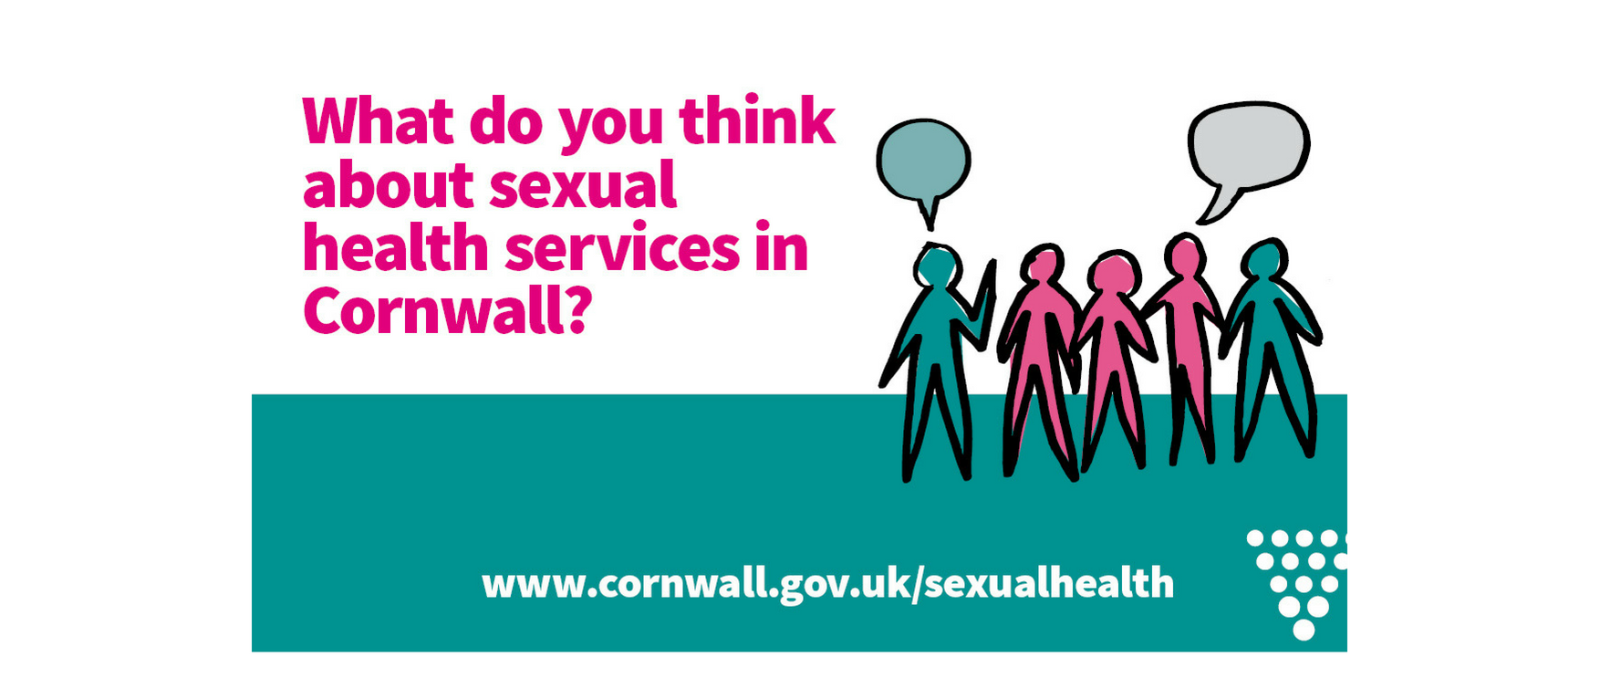 What do you think about sexual health services in Cornwall? Click here to tell us!